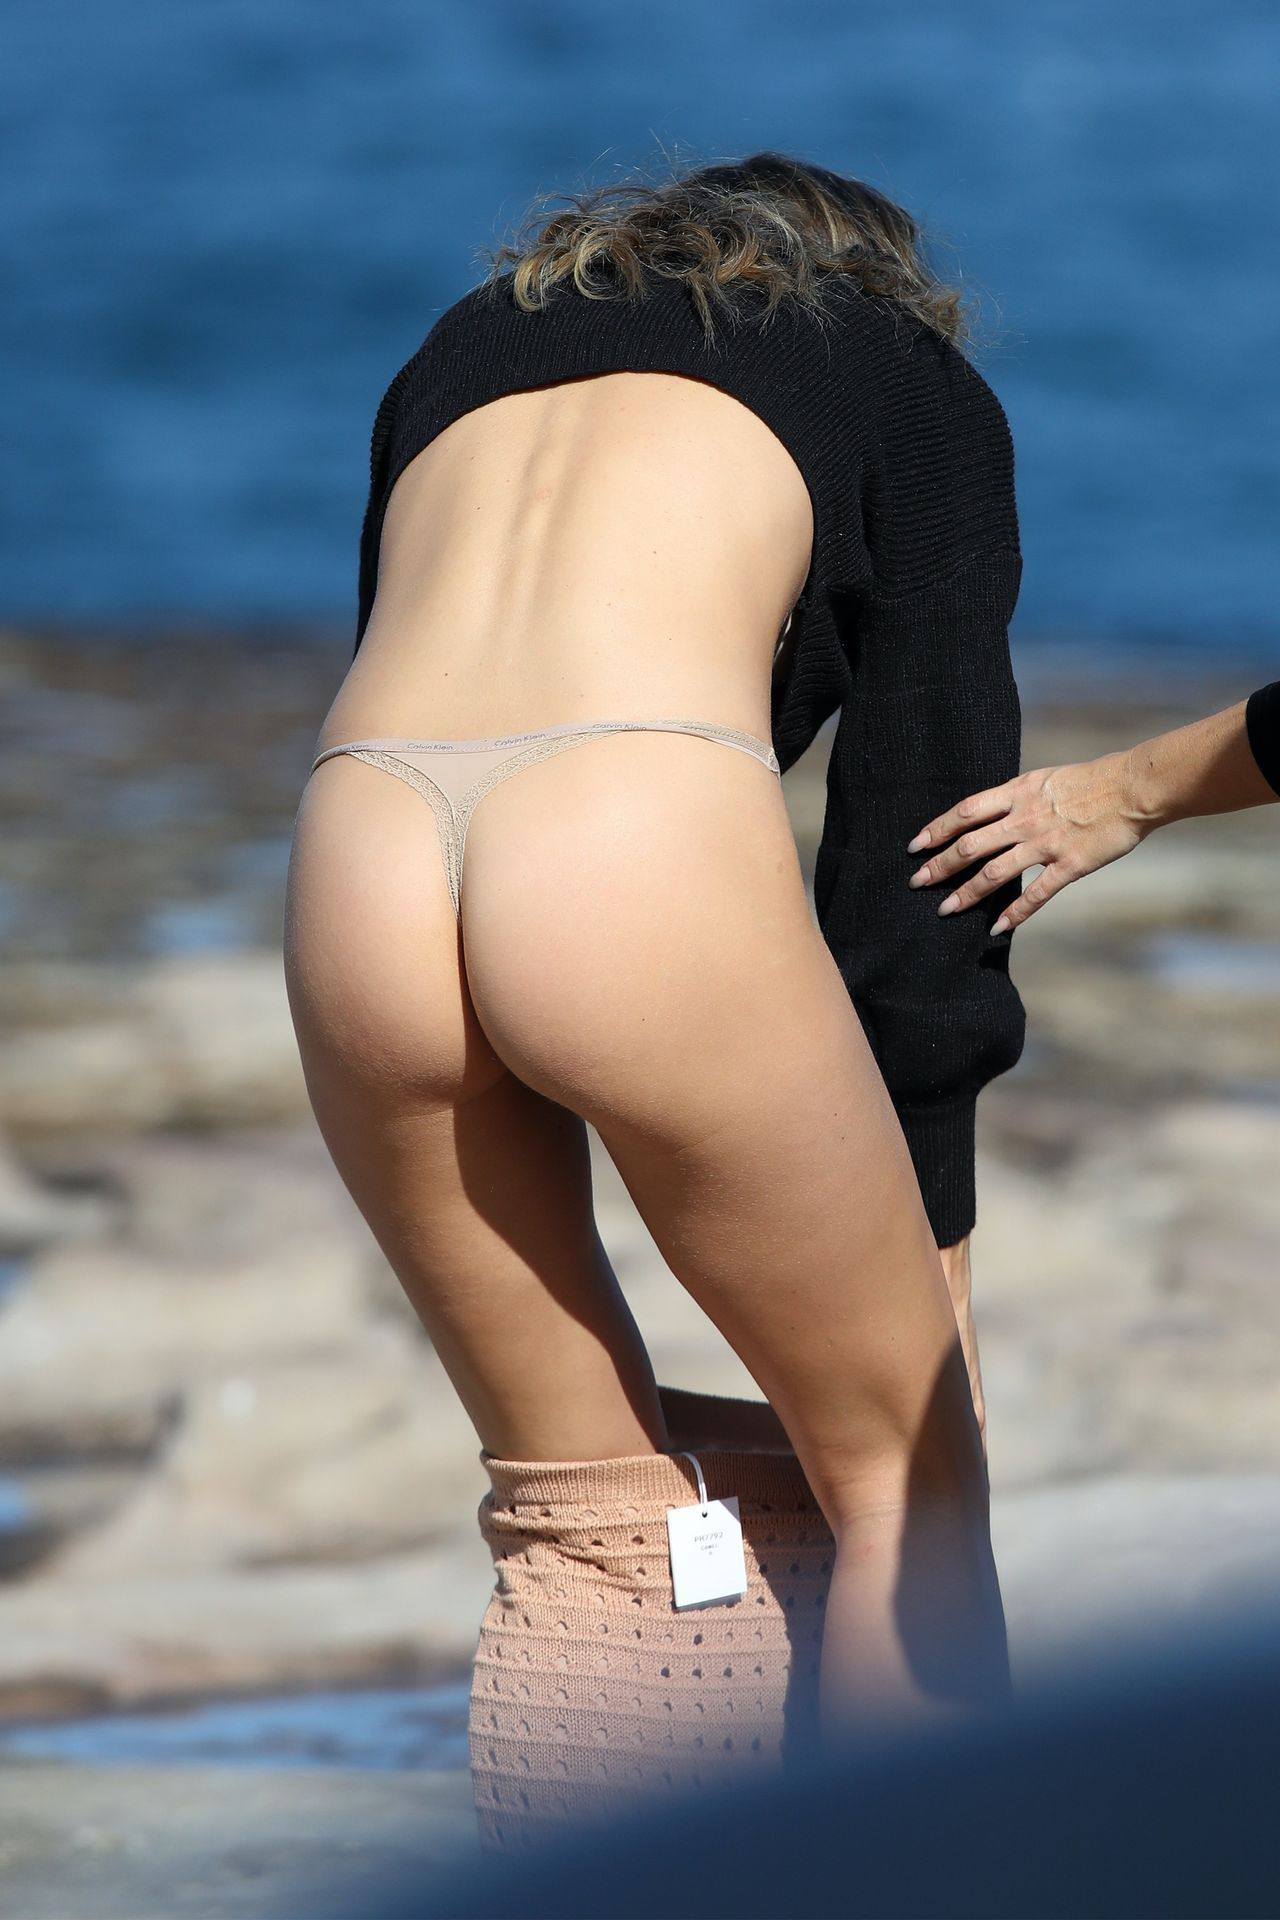 Stephanie Claire Smith – Sexy Big Camel Toe In Panties At Photoshoot In Sydney 0019